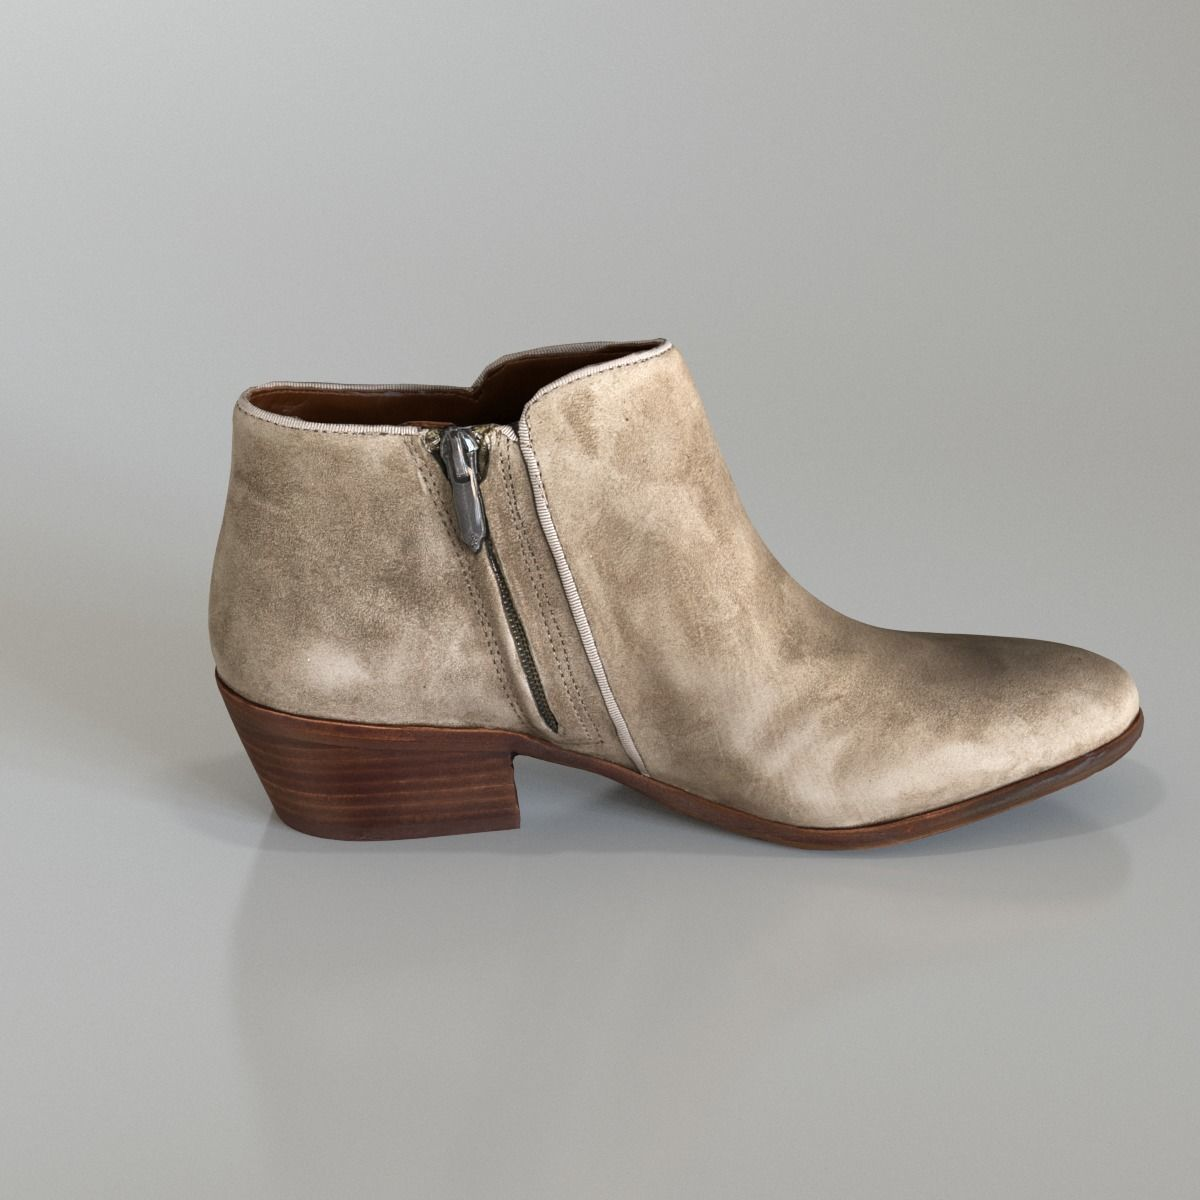 b9c65d8b2 3D model Sam Edelman Petty Putty Boot | CGTrader